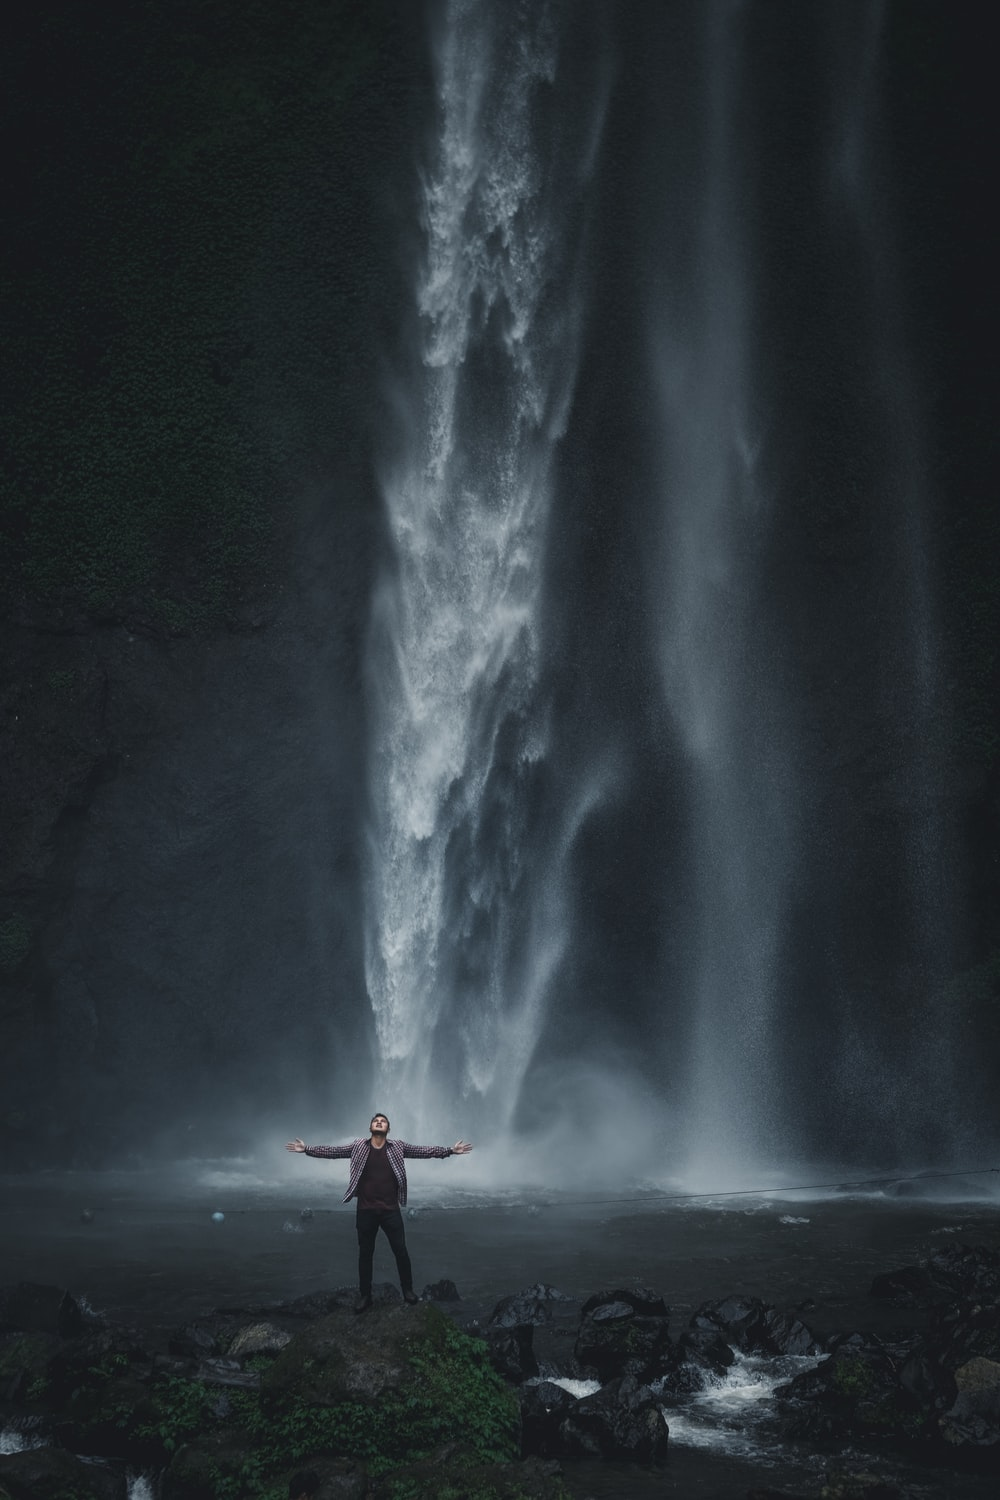 man in gray jacket standing near waterfalls